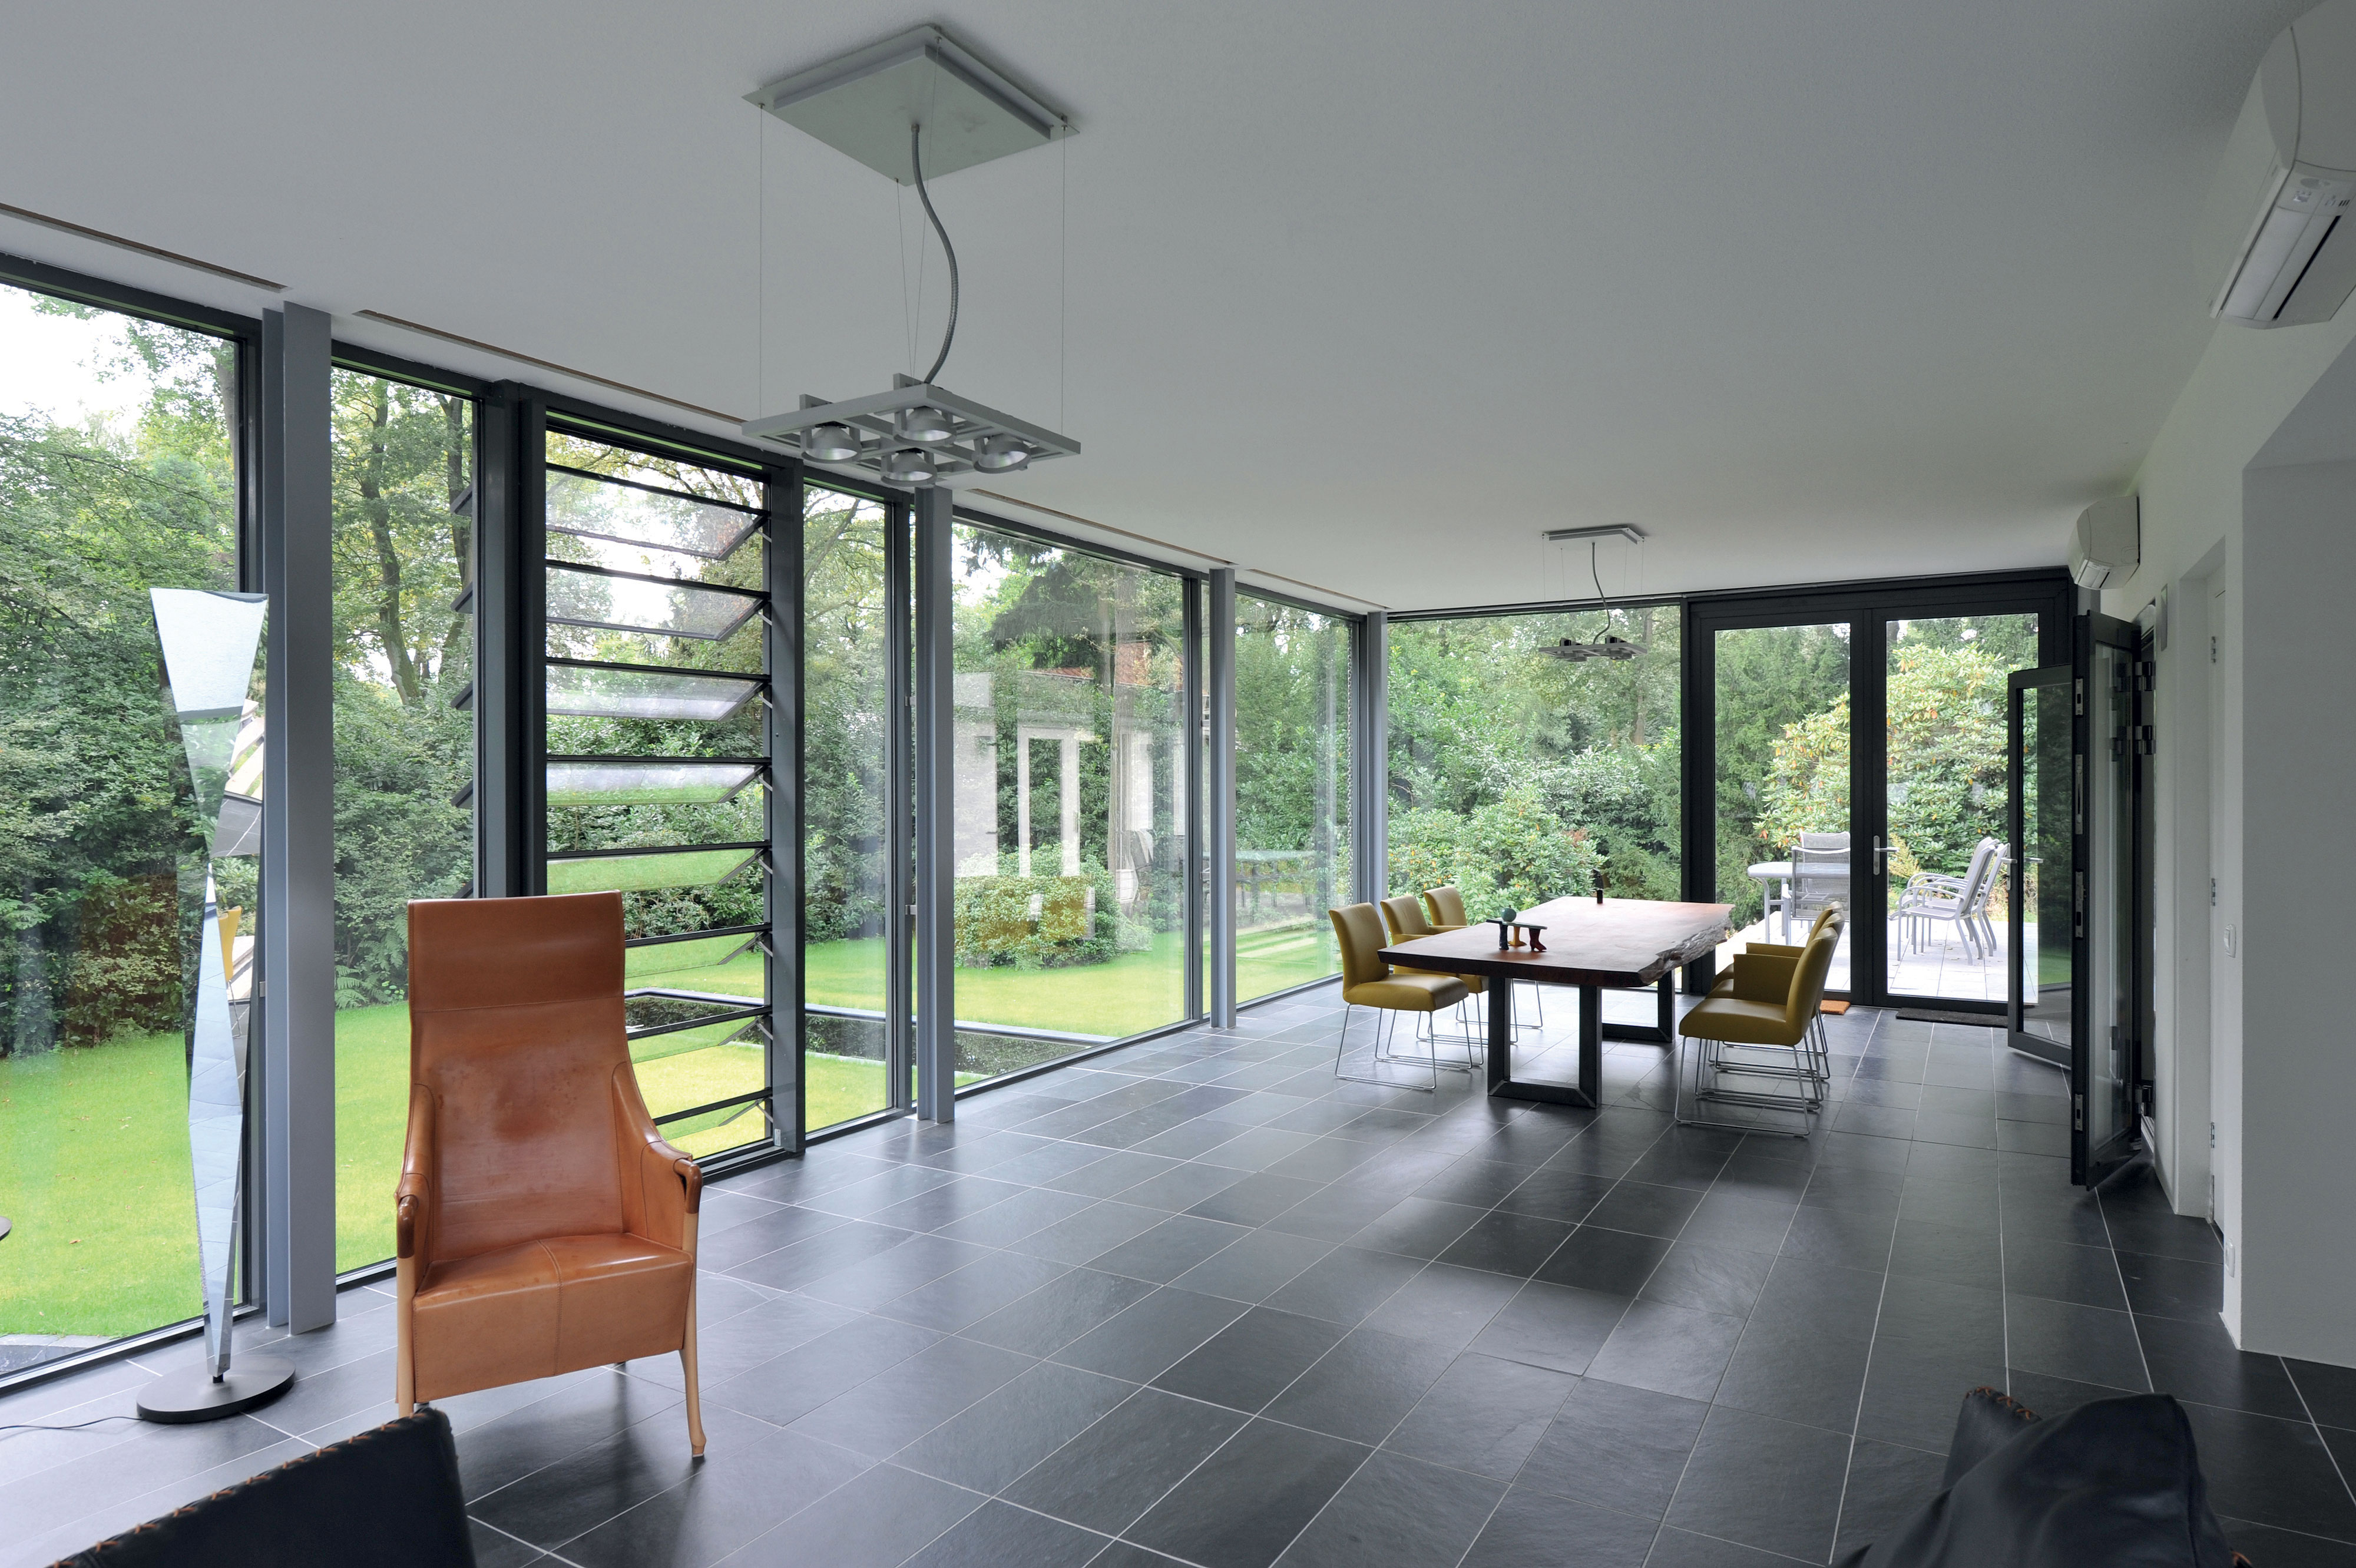 Finding Right Aluminium Windows And Doors For An Extension